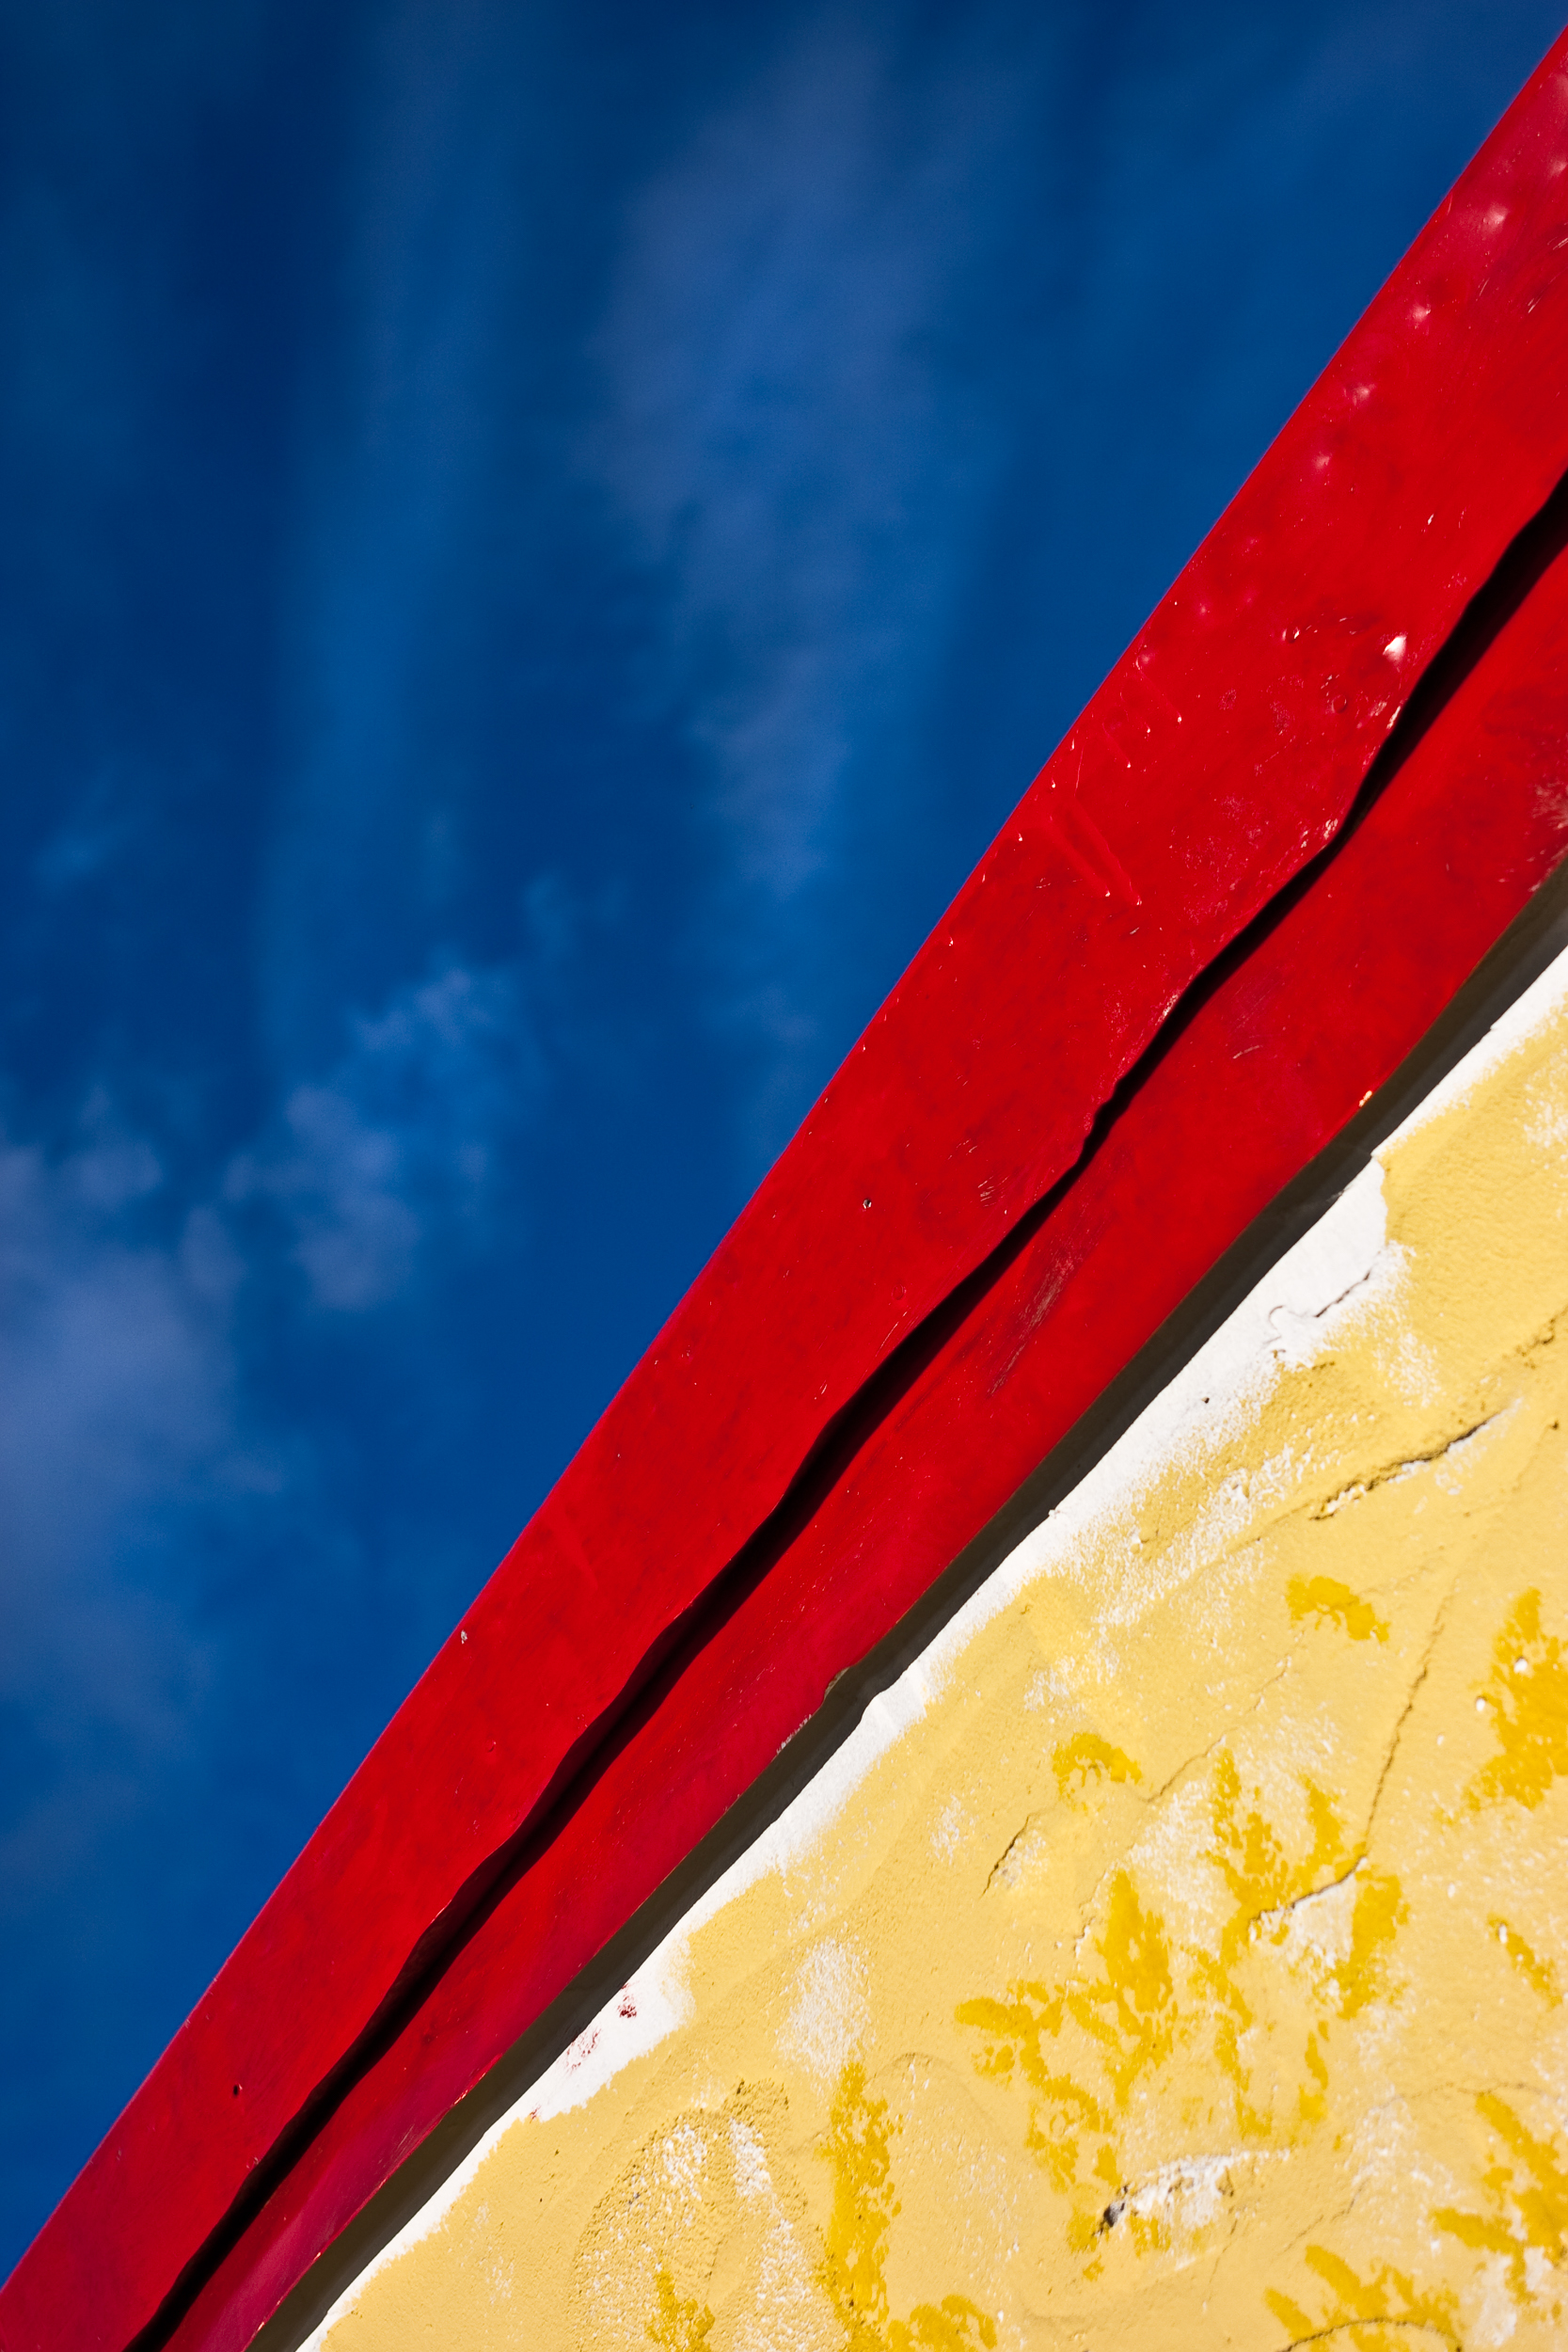 Detail abstract image of a red roof with yellow walls against a cloudy blue sky.